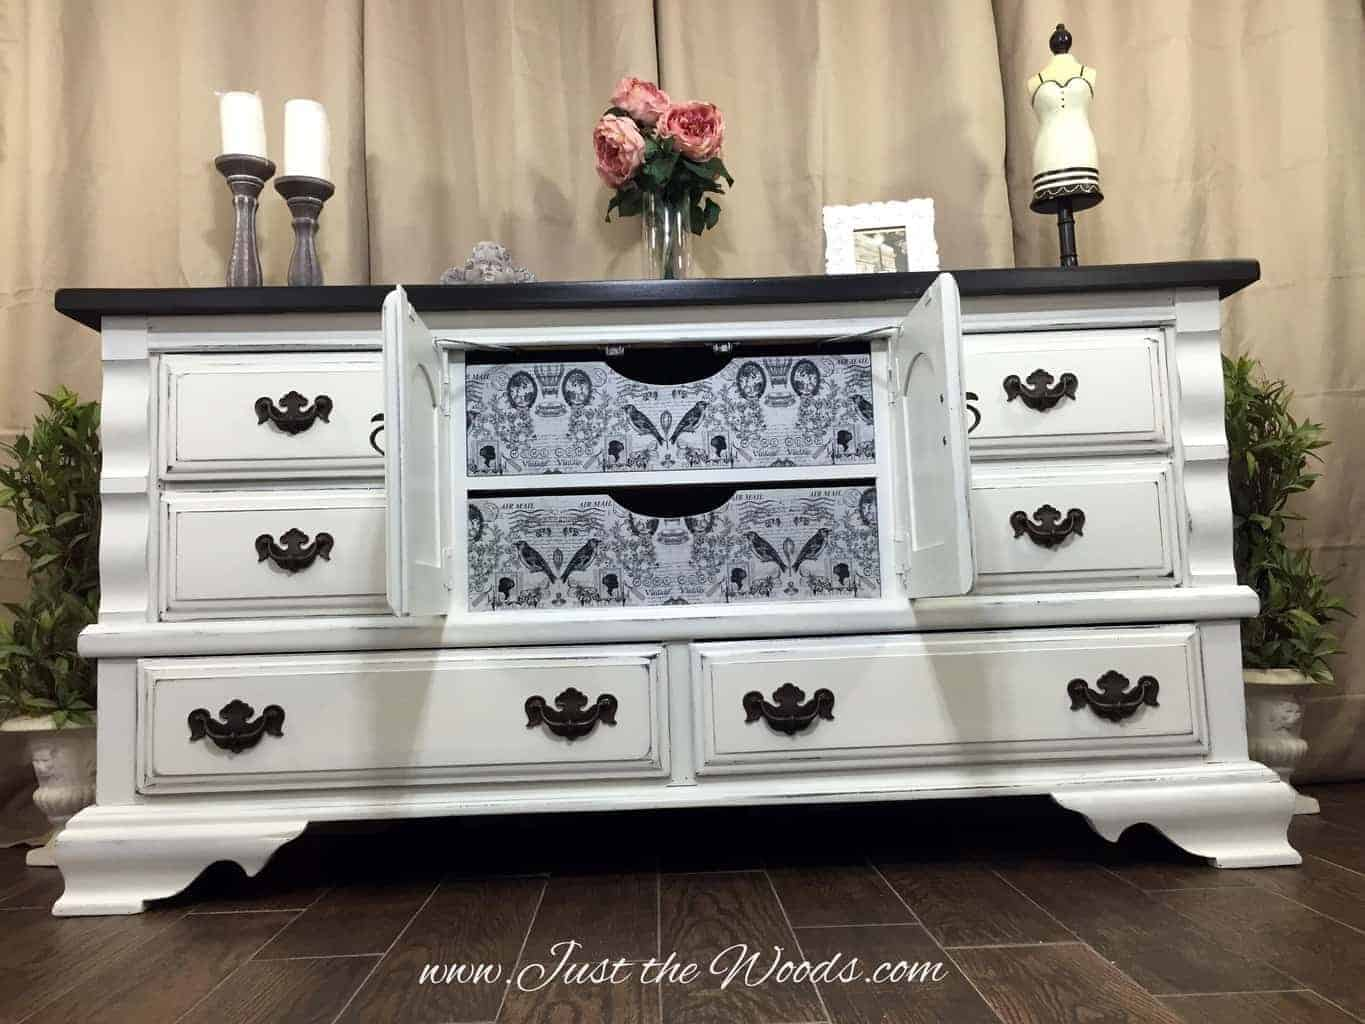 painted dresser ideas, painted dresser with decoupage, distressed white painted dresser